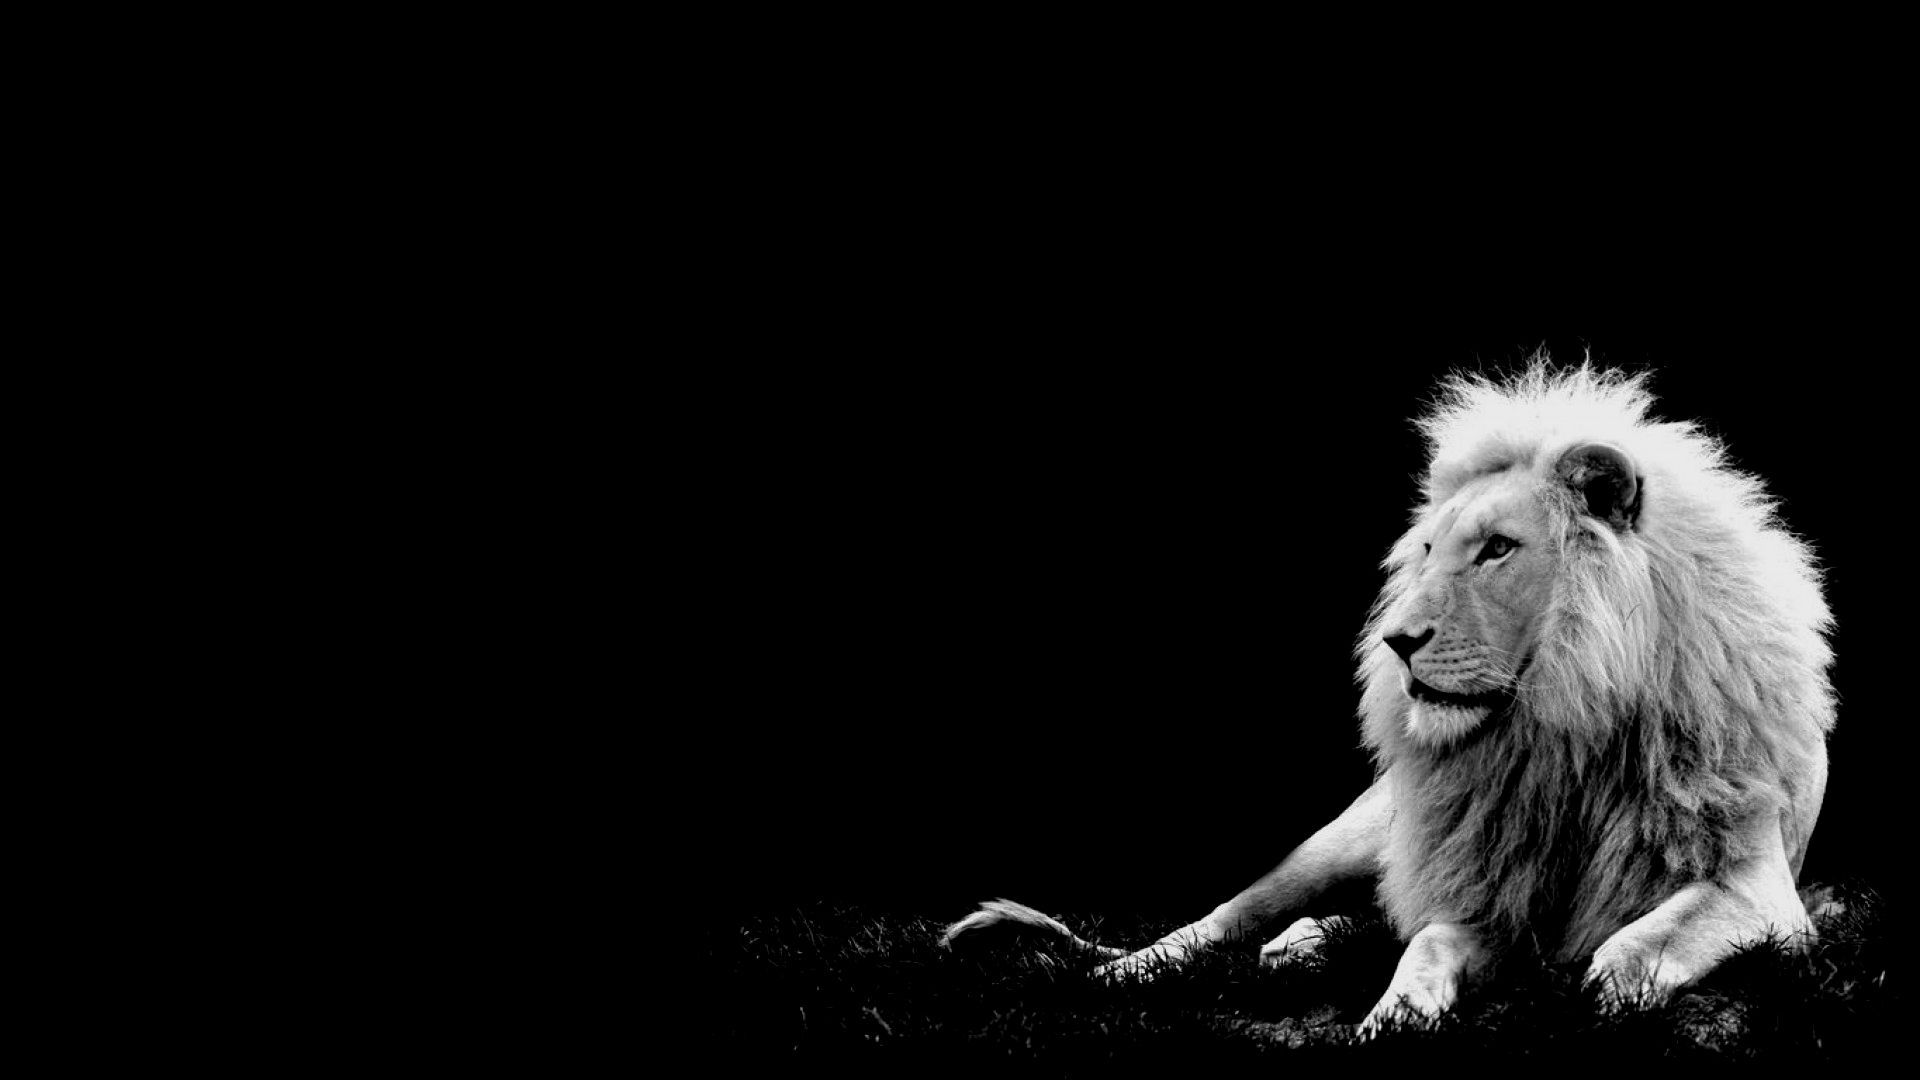 White Lion Wallpaper Hd Lion Wallpaper Lion Hd Wallpaper Lion Pictures